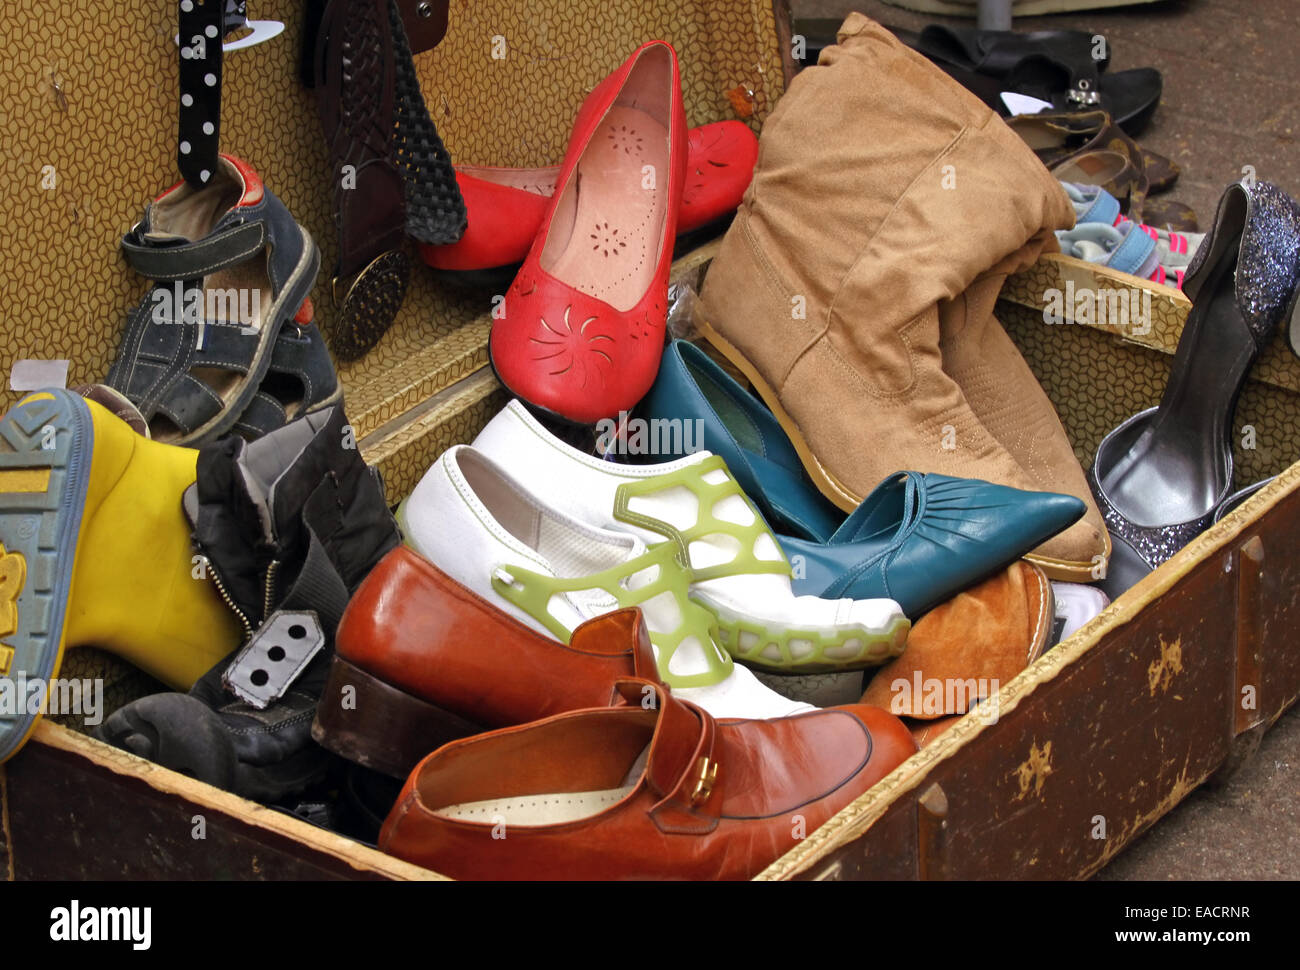 Suitcase full of old worn out shoes at flea market - Stock Image